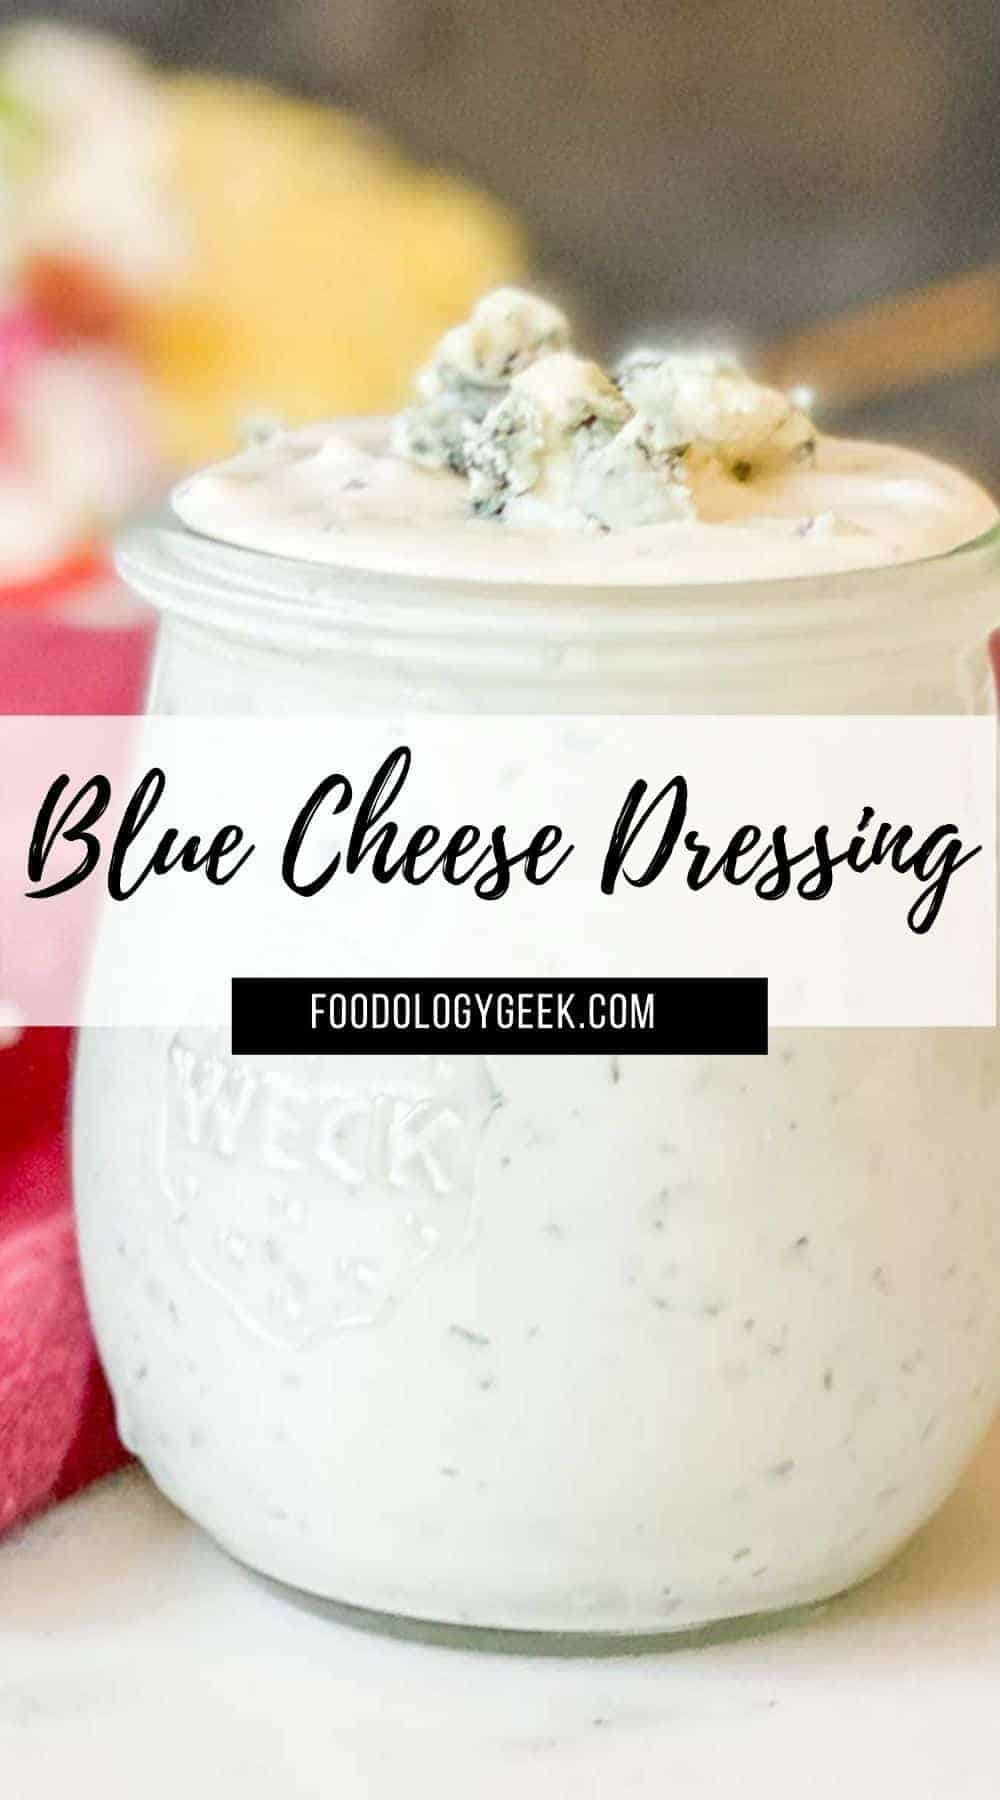 This the best blue cheese dressing! Homemade is way better than any store-bought dressing. It's super easy to make and tastes delicious on everything from a Classic Wedge Salad to Buffalo Wings.